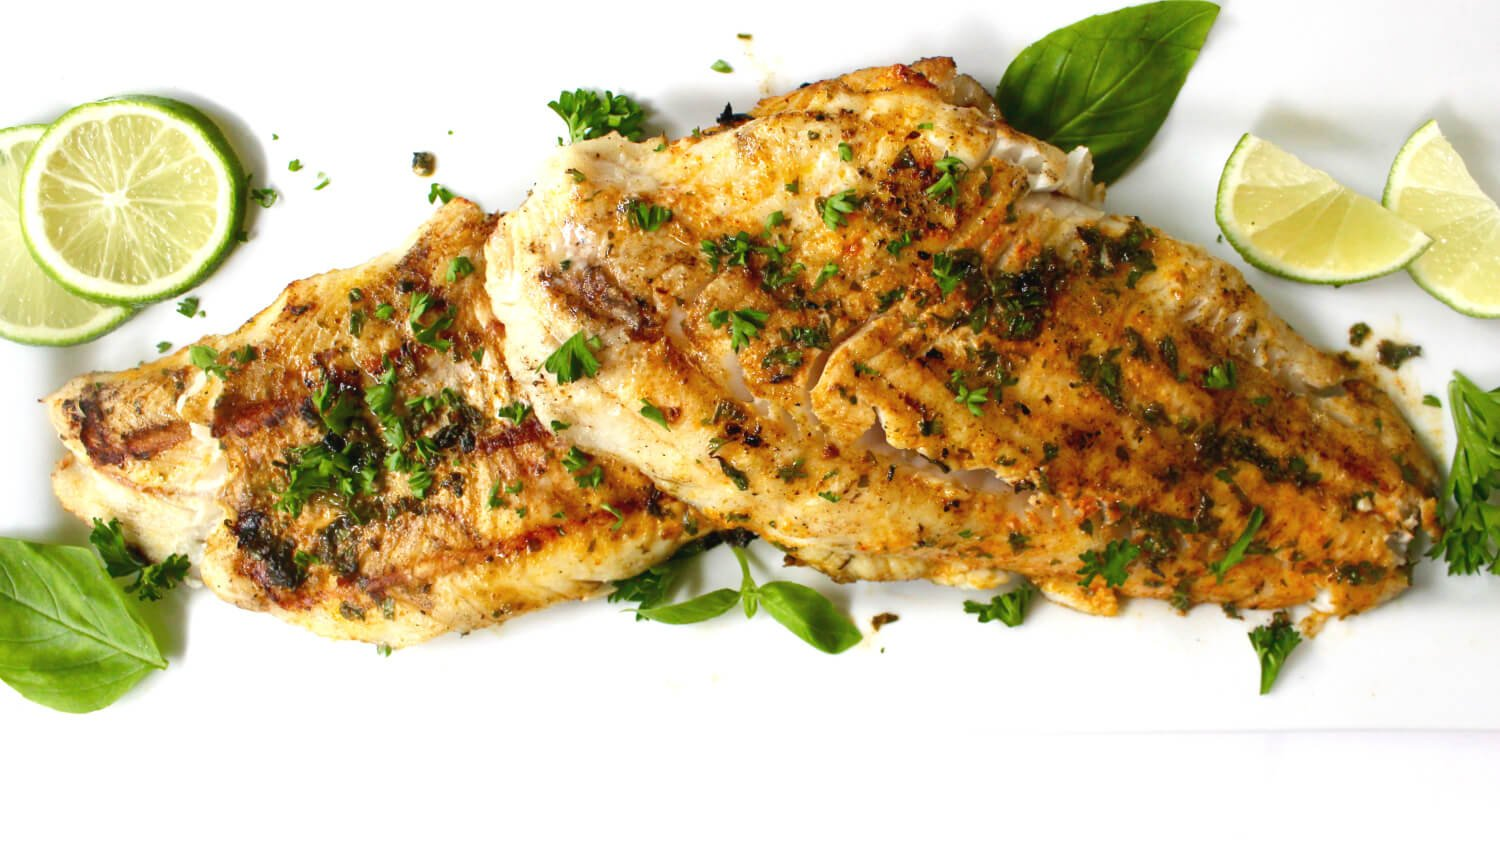 Montana Walleye, grilled with herbs and lime